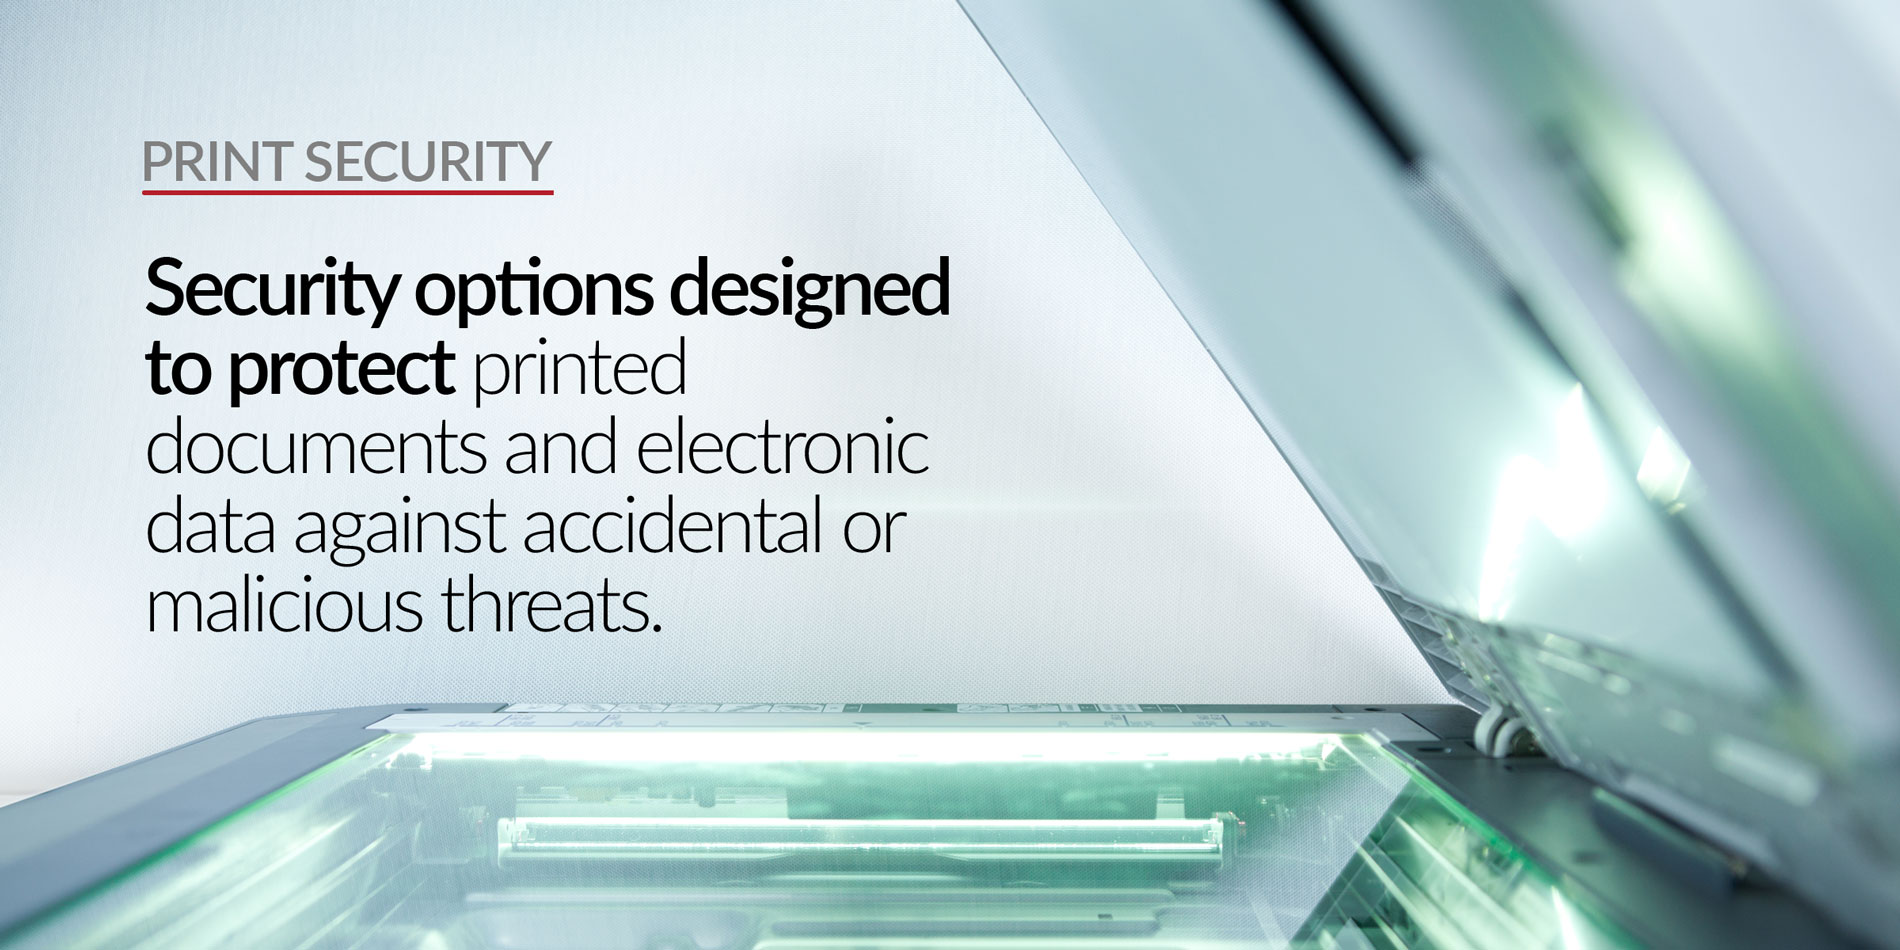 Stratix Systems Print Security